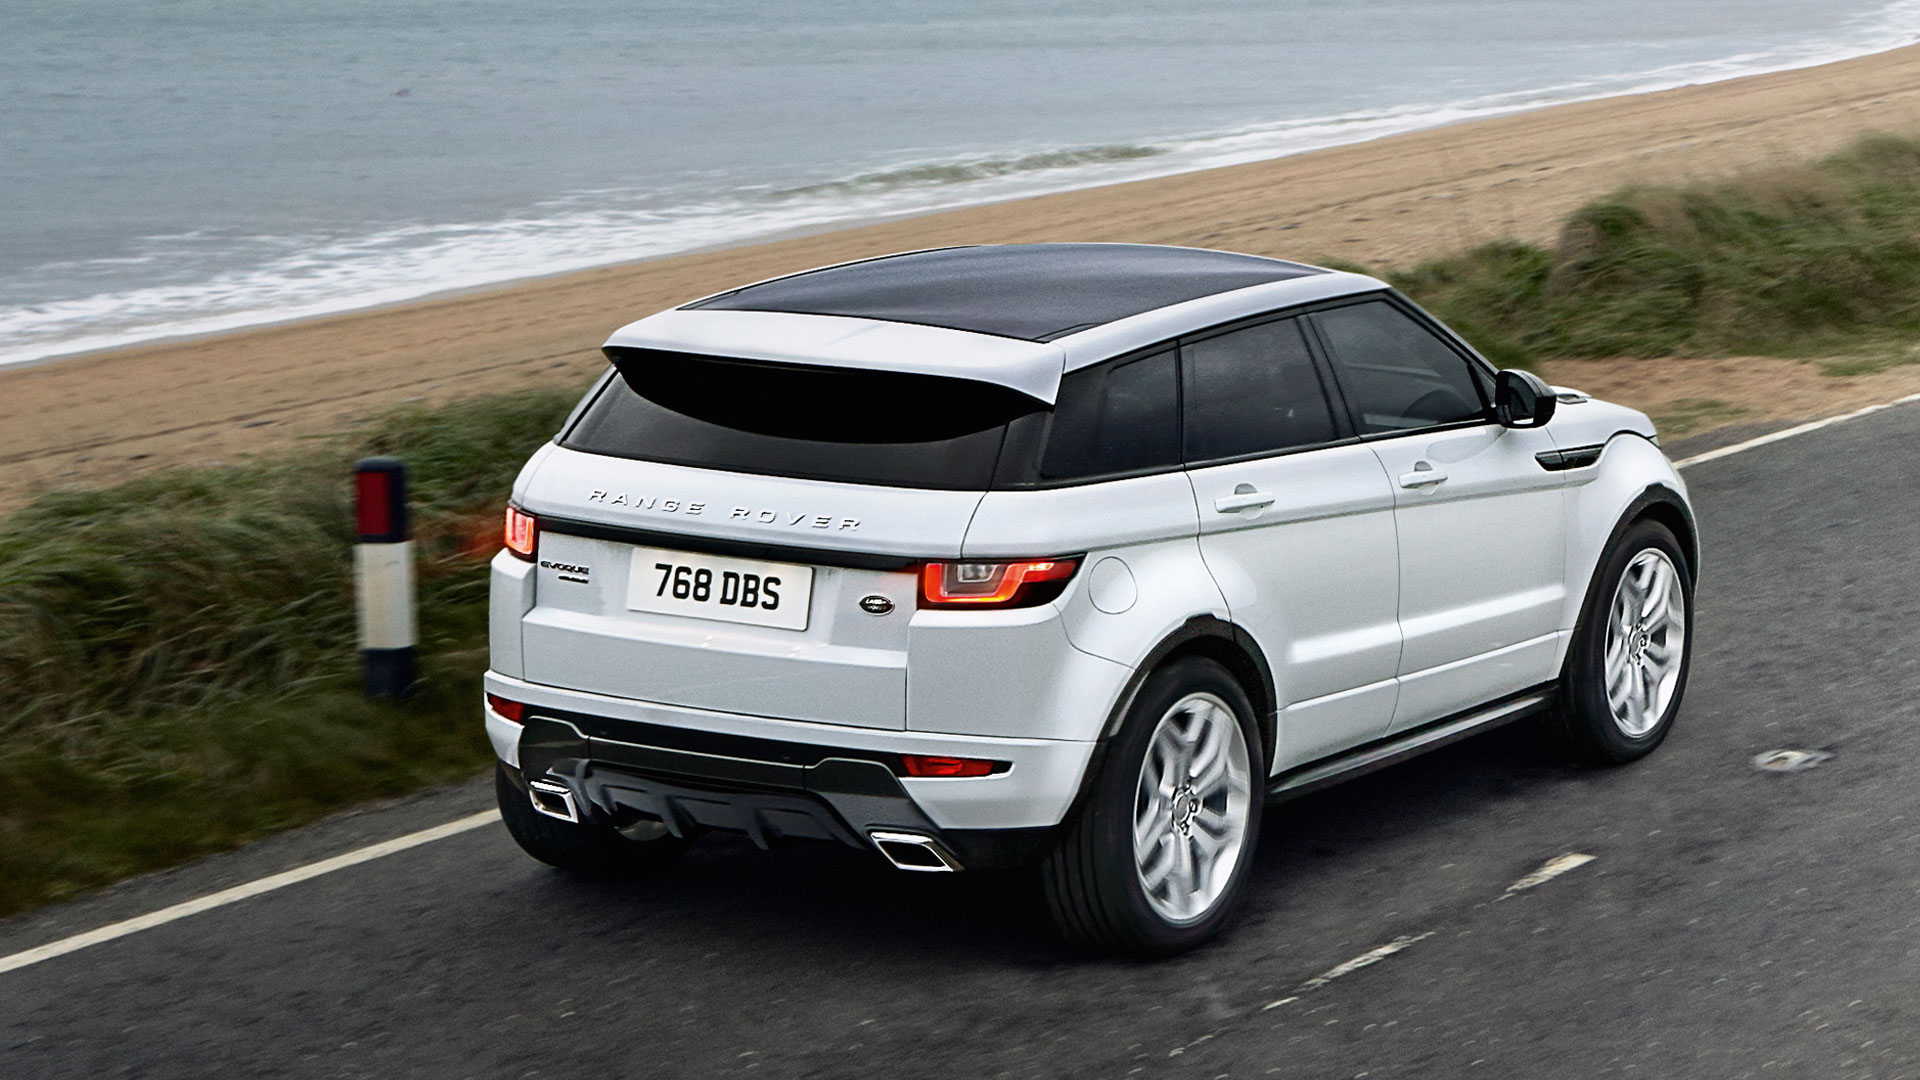 land rover range rover evoque 2017 hse diesel price mileage reviews specification gallery. Black Bedroom Furniture Sets. Home Design Ideas